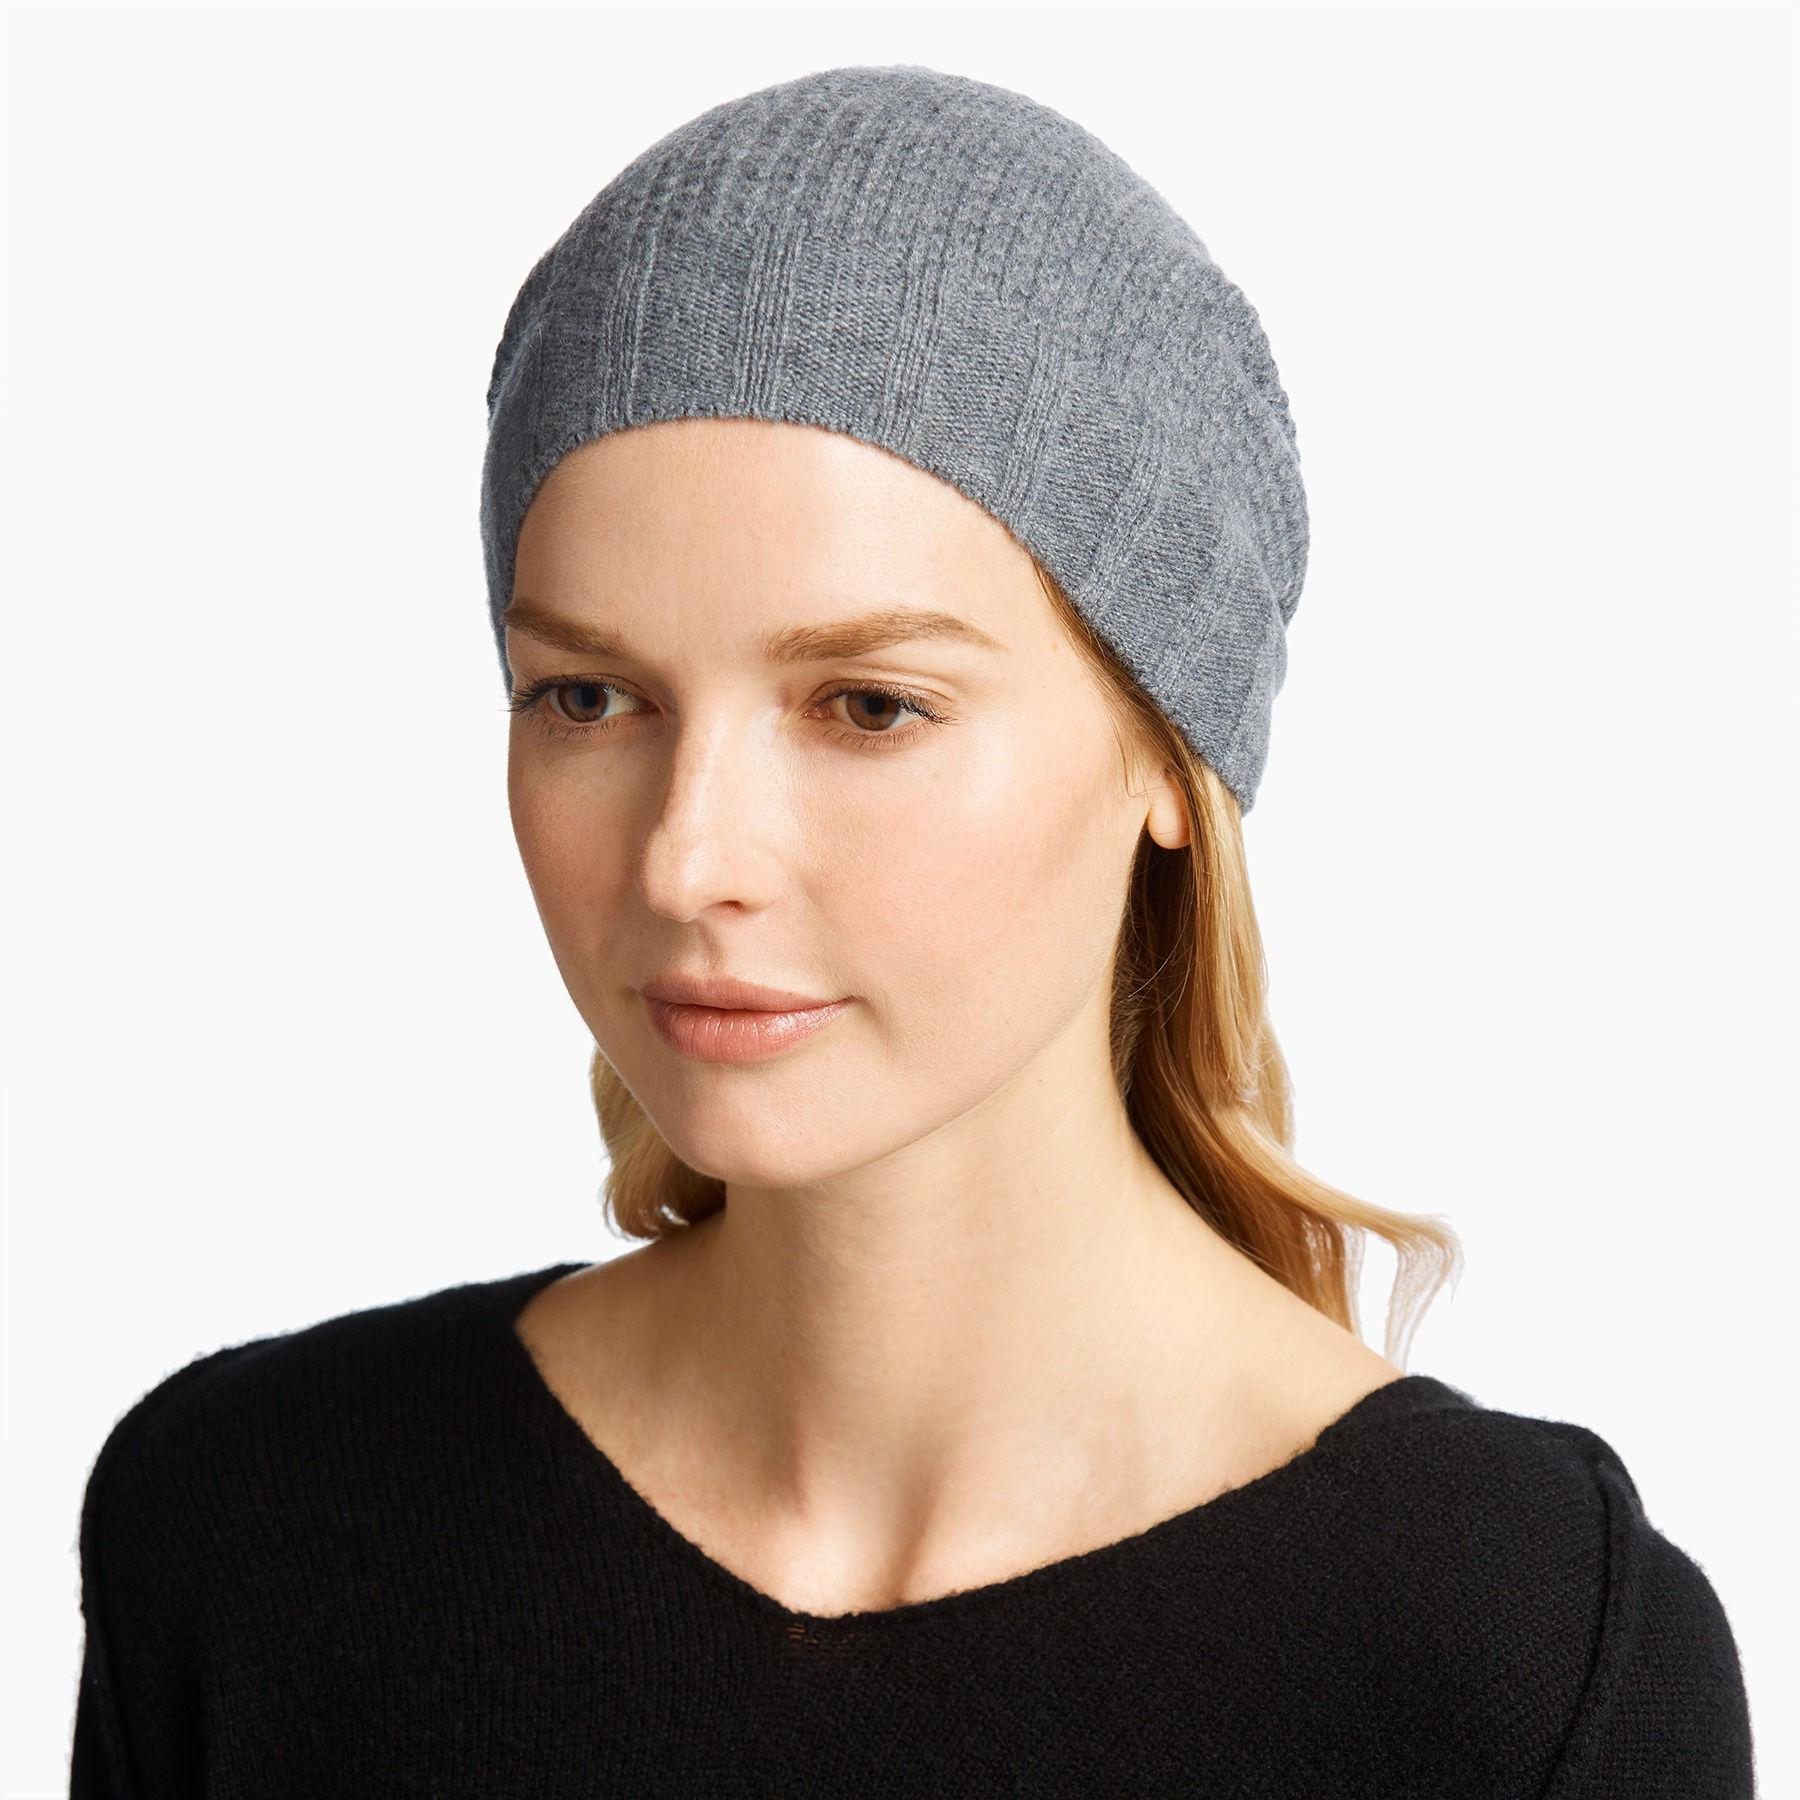 f38a98bb59bd1 James Perse Cashmere Thermal Beanie in Gray - Lyst